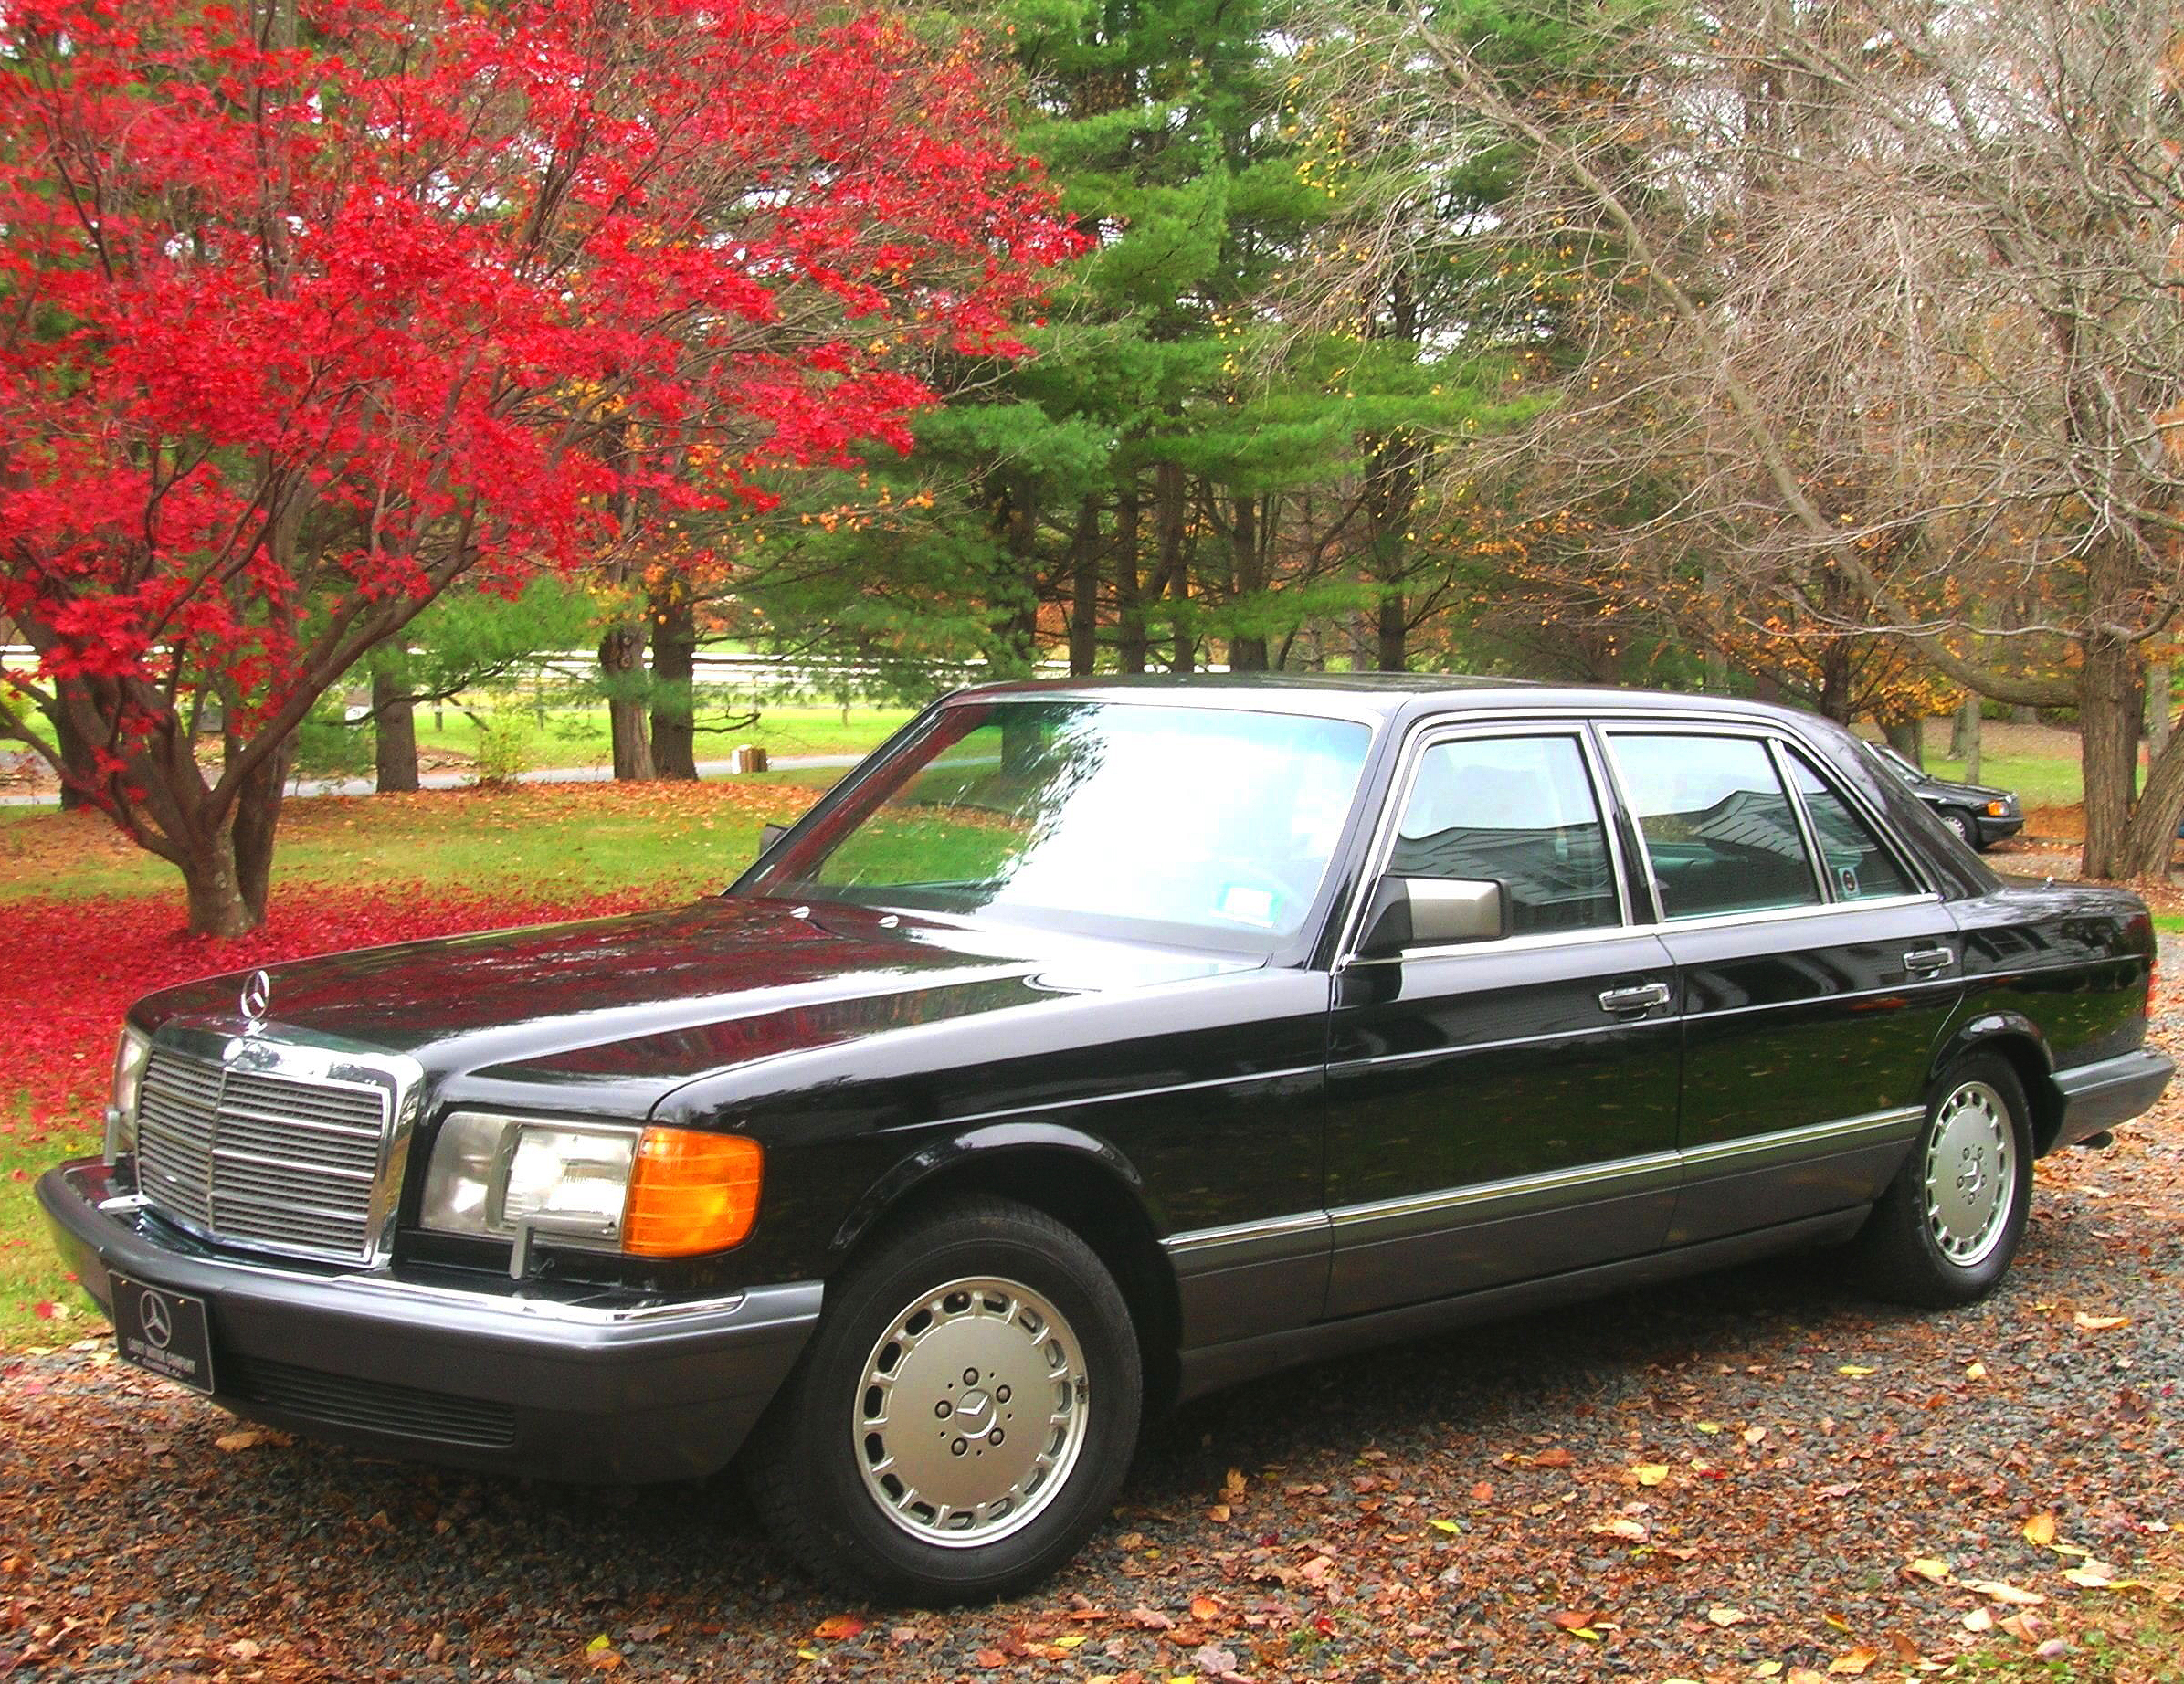 Mercedes 1991 560sel black a classic cars today online for 1991 mercedes benz 560sel